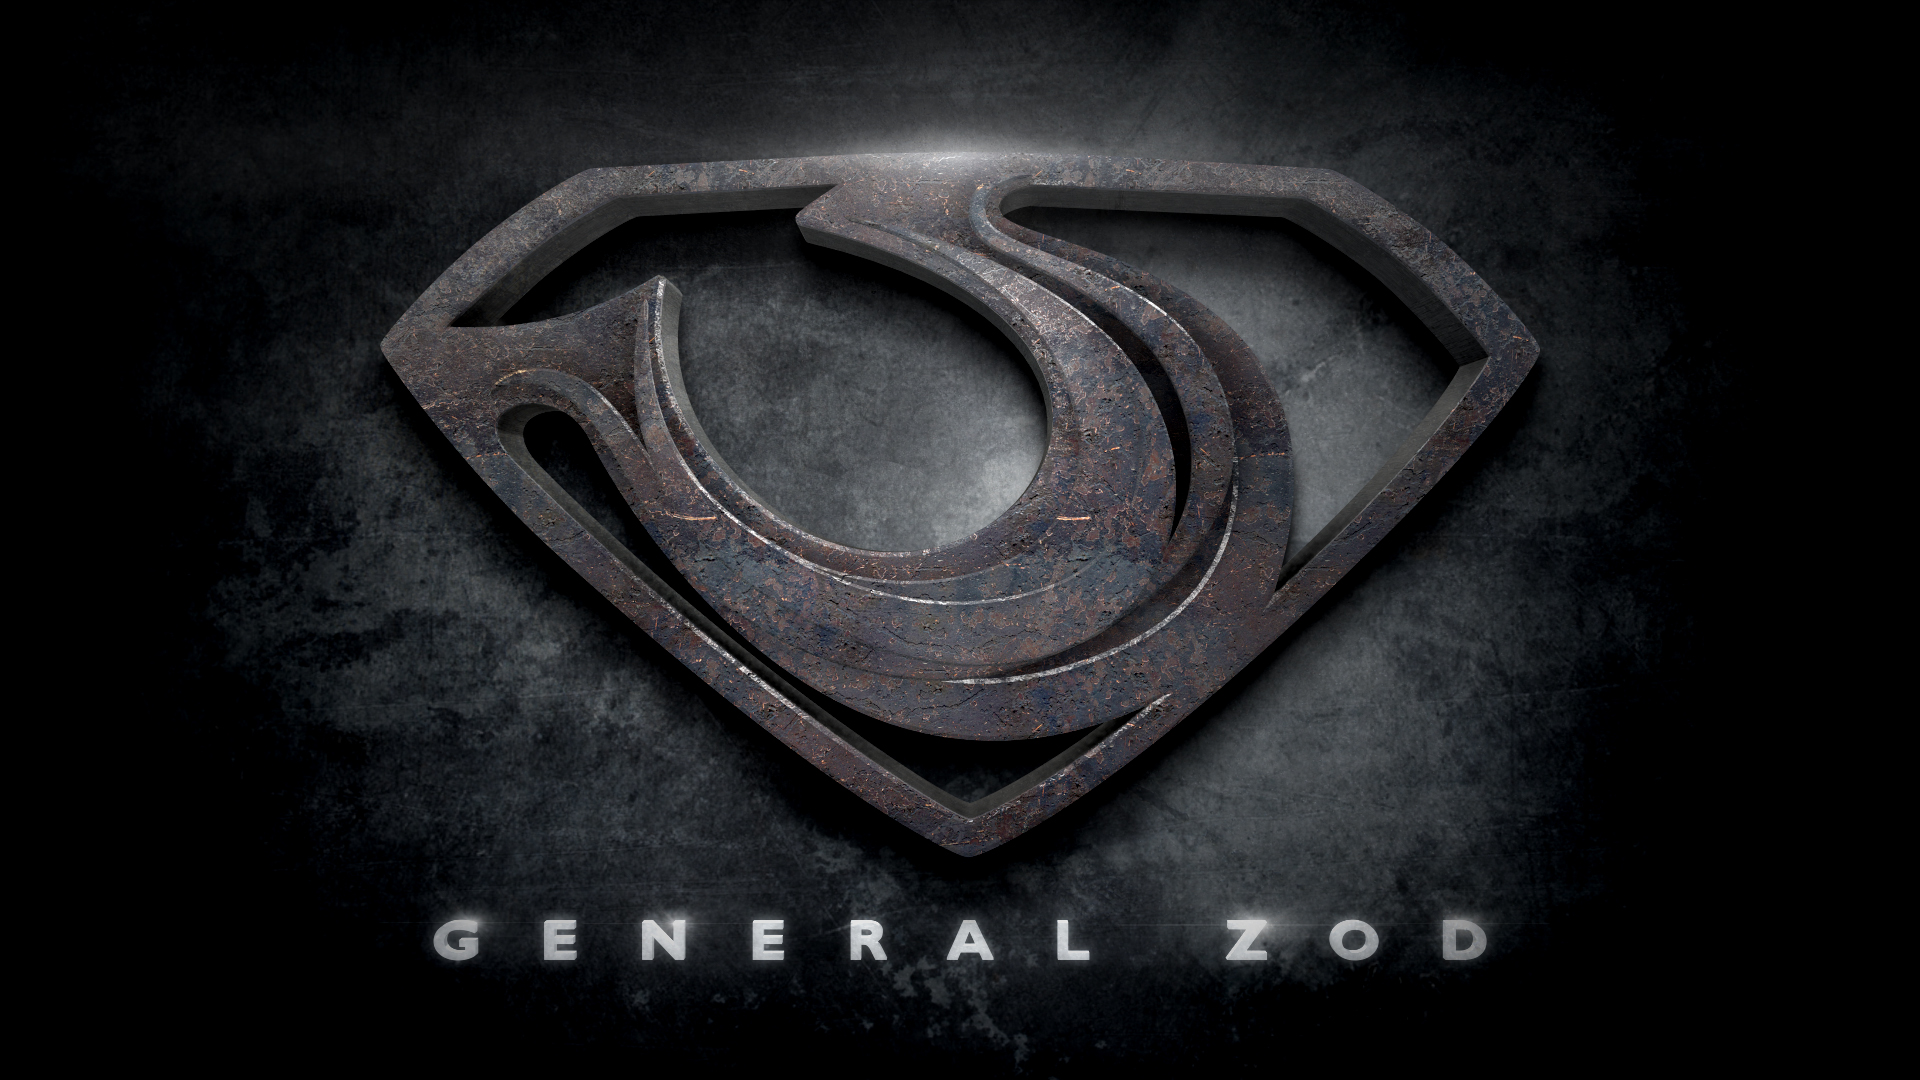 general zod symbol meaning - photo #2